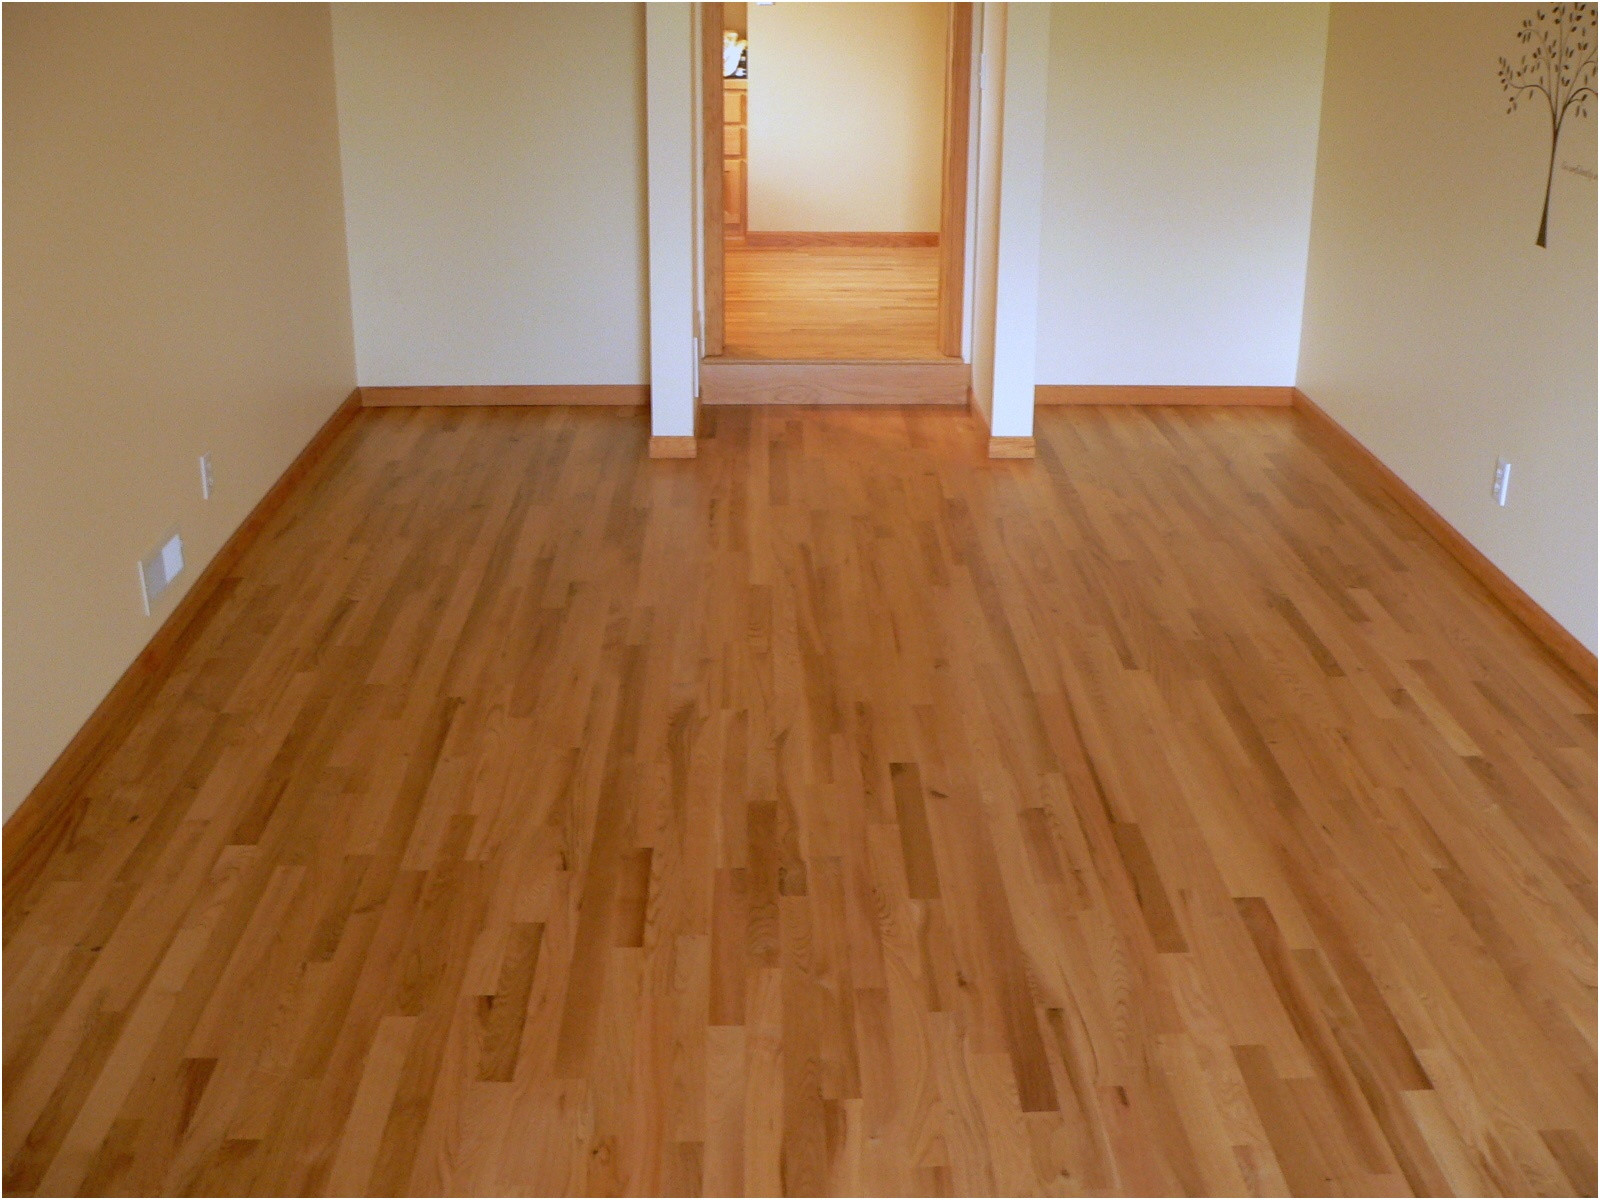 Hardwood Floor Price Estimator Of How Much Does Wood Flooring Cost Beautiful Floor Cleaning Stripping Inside How Much Does Wood Flooring Cost Best Of Floor Hardwood Flooring Cost Estimator Per Sq Ft